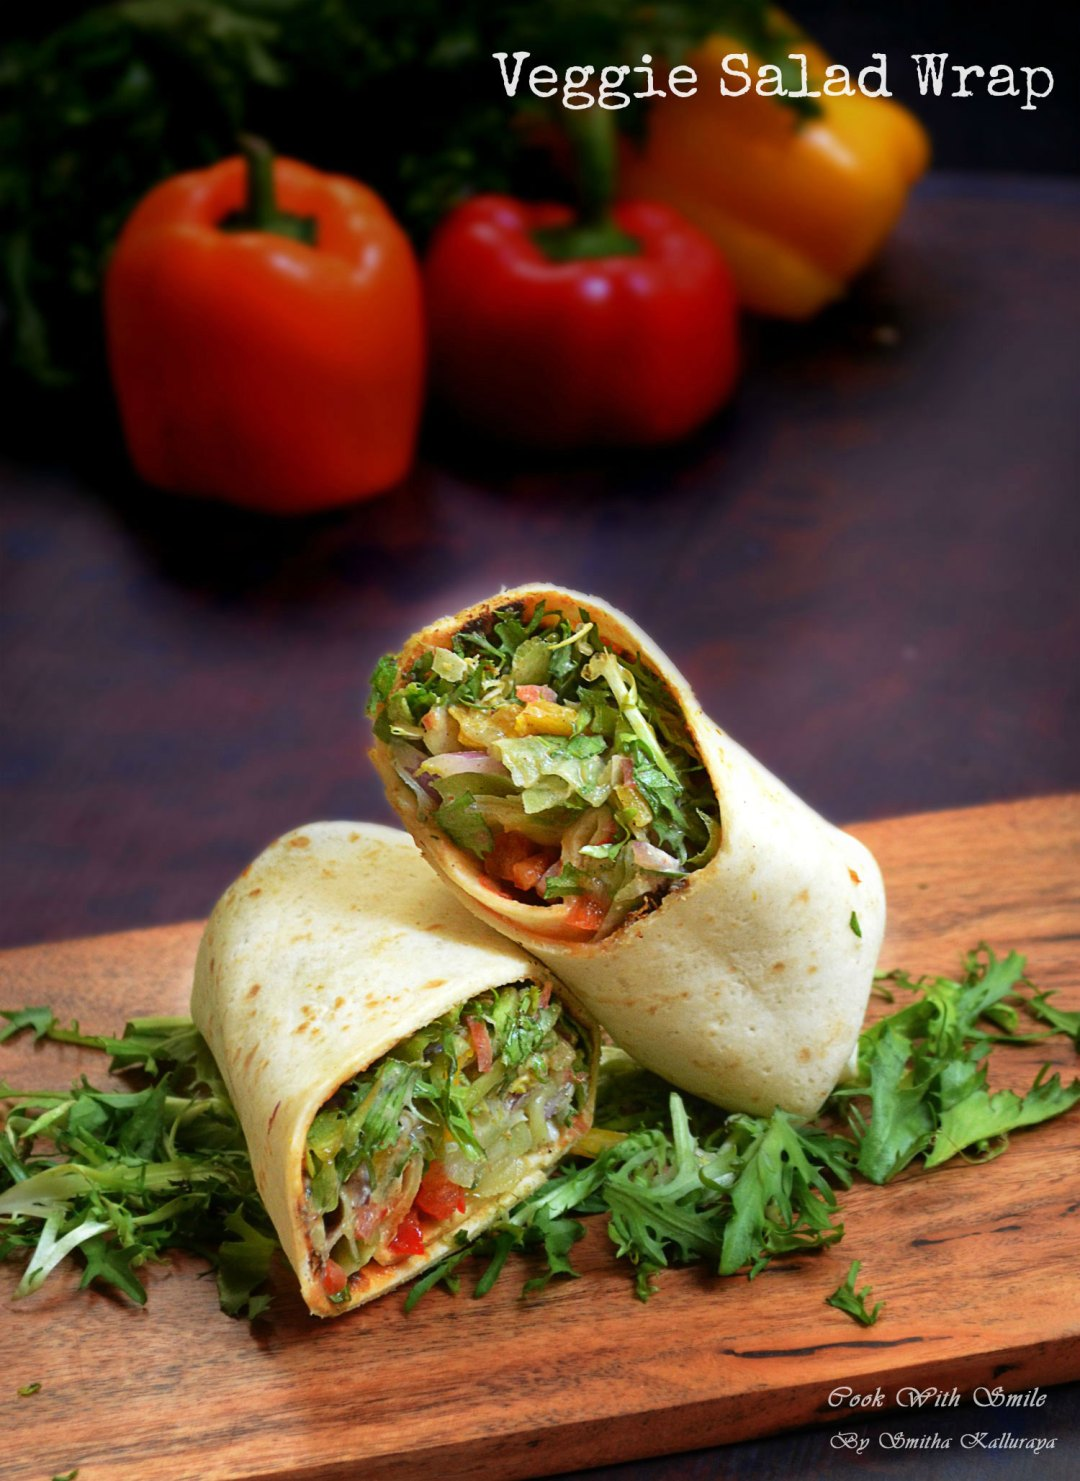 Veg salad wrap recipe